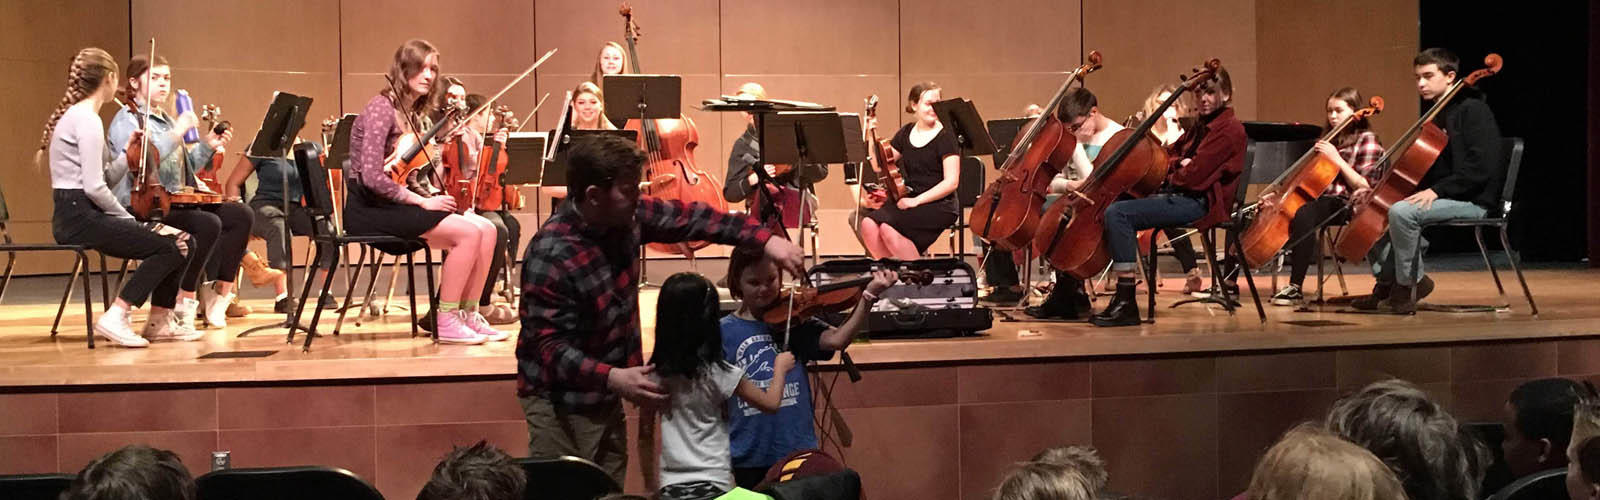 Visiting East HS Orchestra